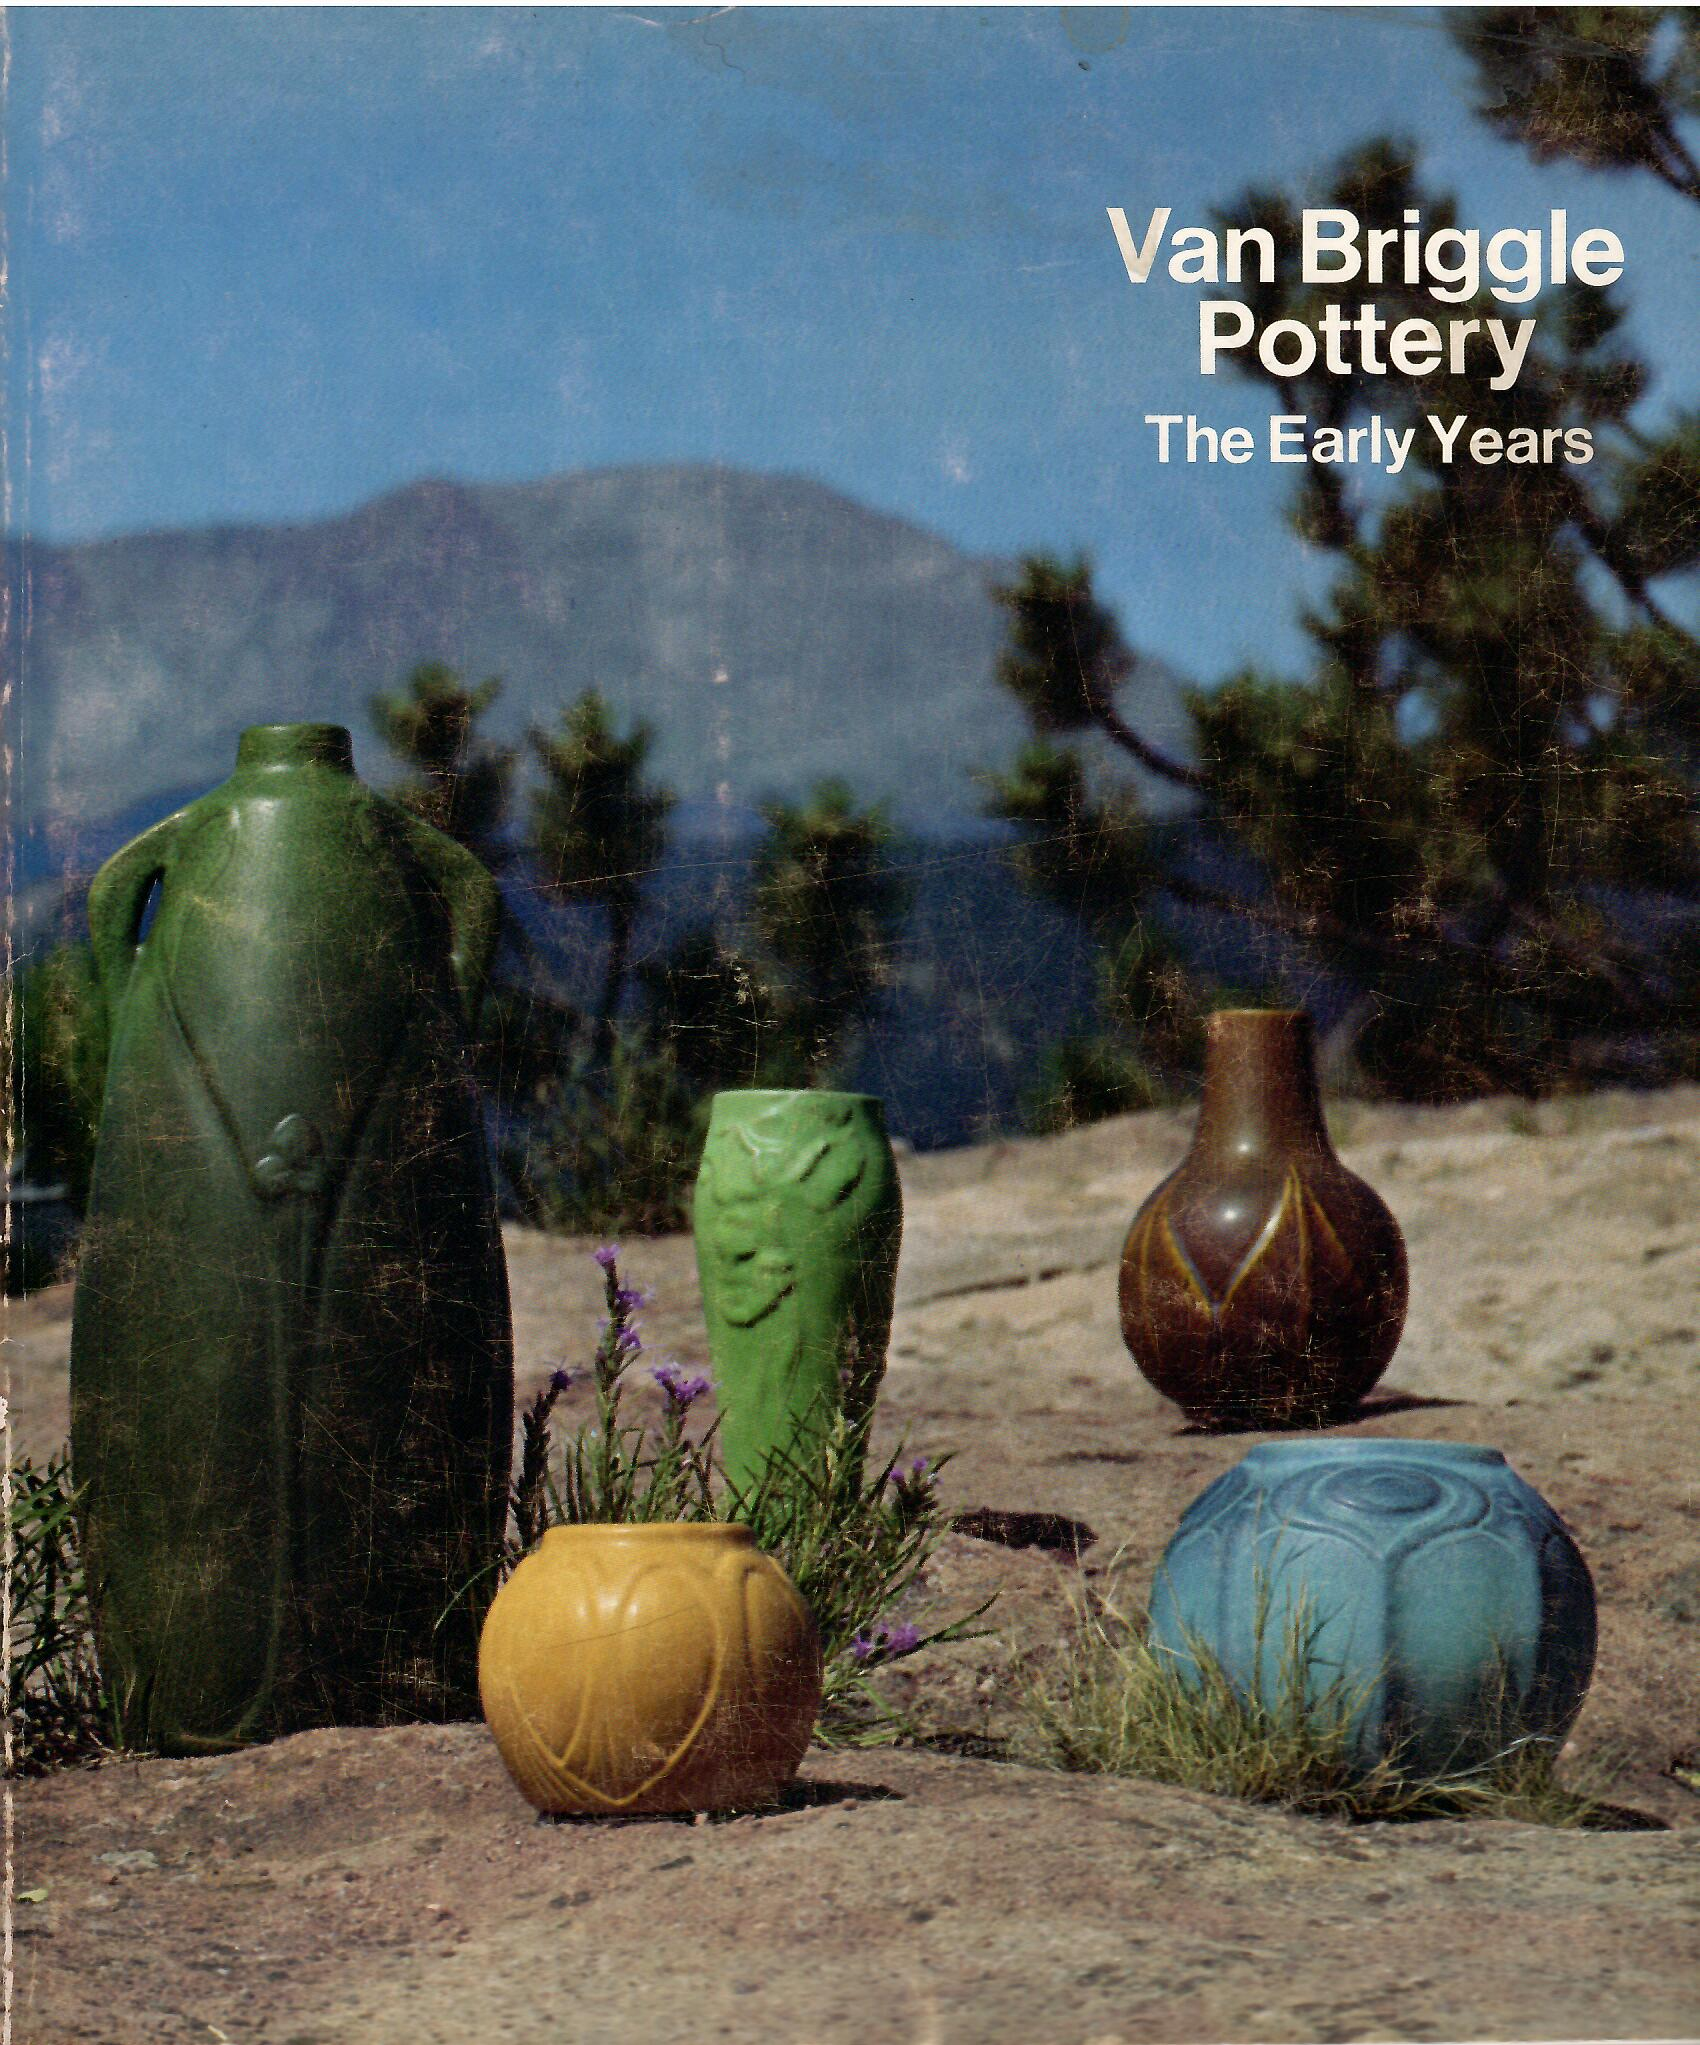 Image for A Retrospective Exhibition, January 19 - March 4, 1975; VAN BRIGGLE POTTERY THE EARLY YEARS